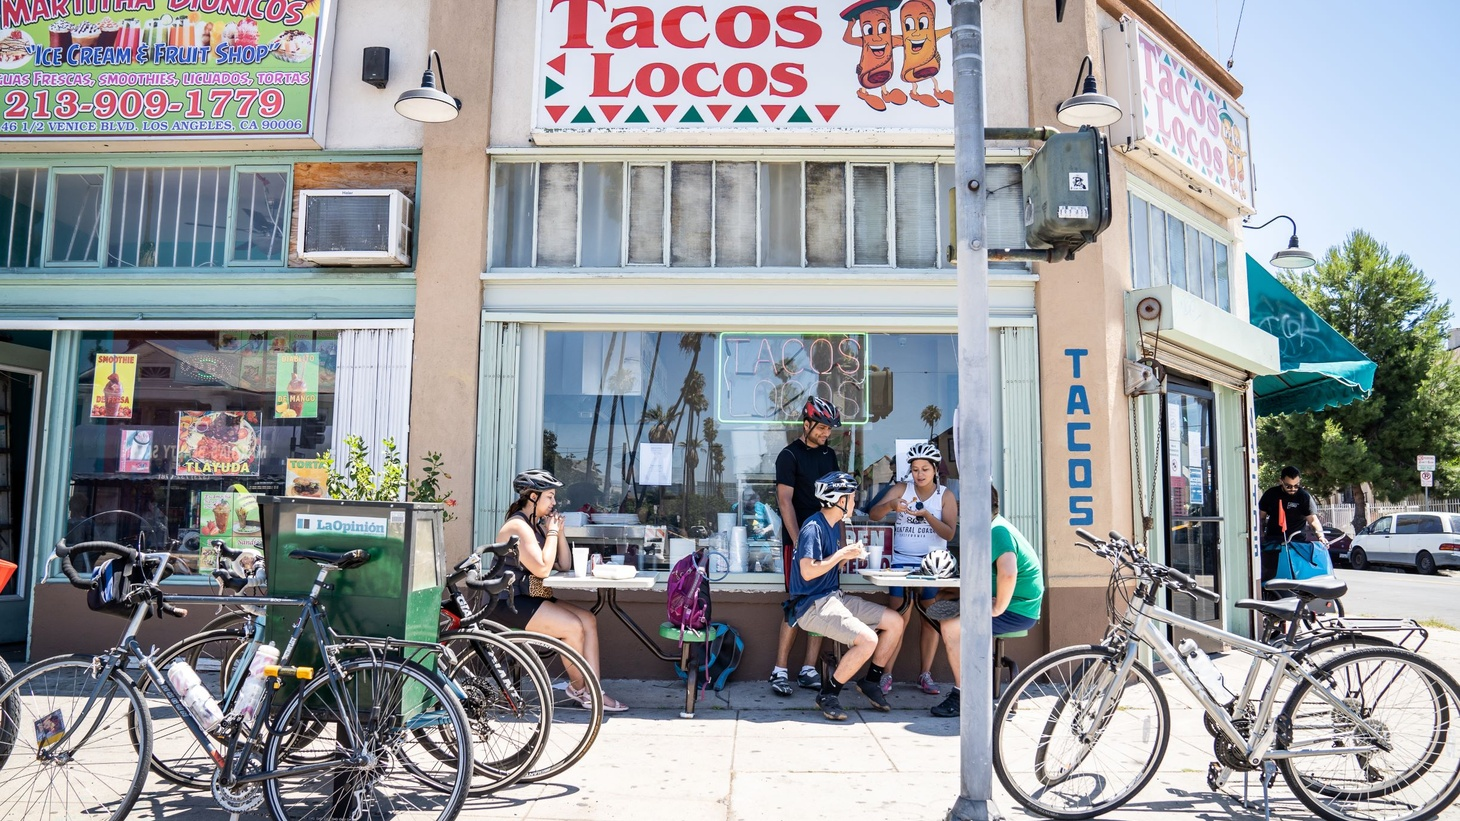 The City of LA and CicLAvia are helping restaurants expand their sidewalk seating and spill into nearby parking lots and car lanes. The process takes bureaucratic know-how and accessibility awareness.